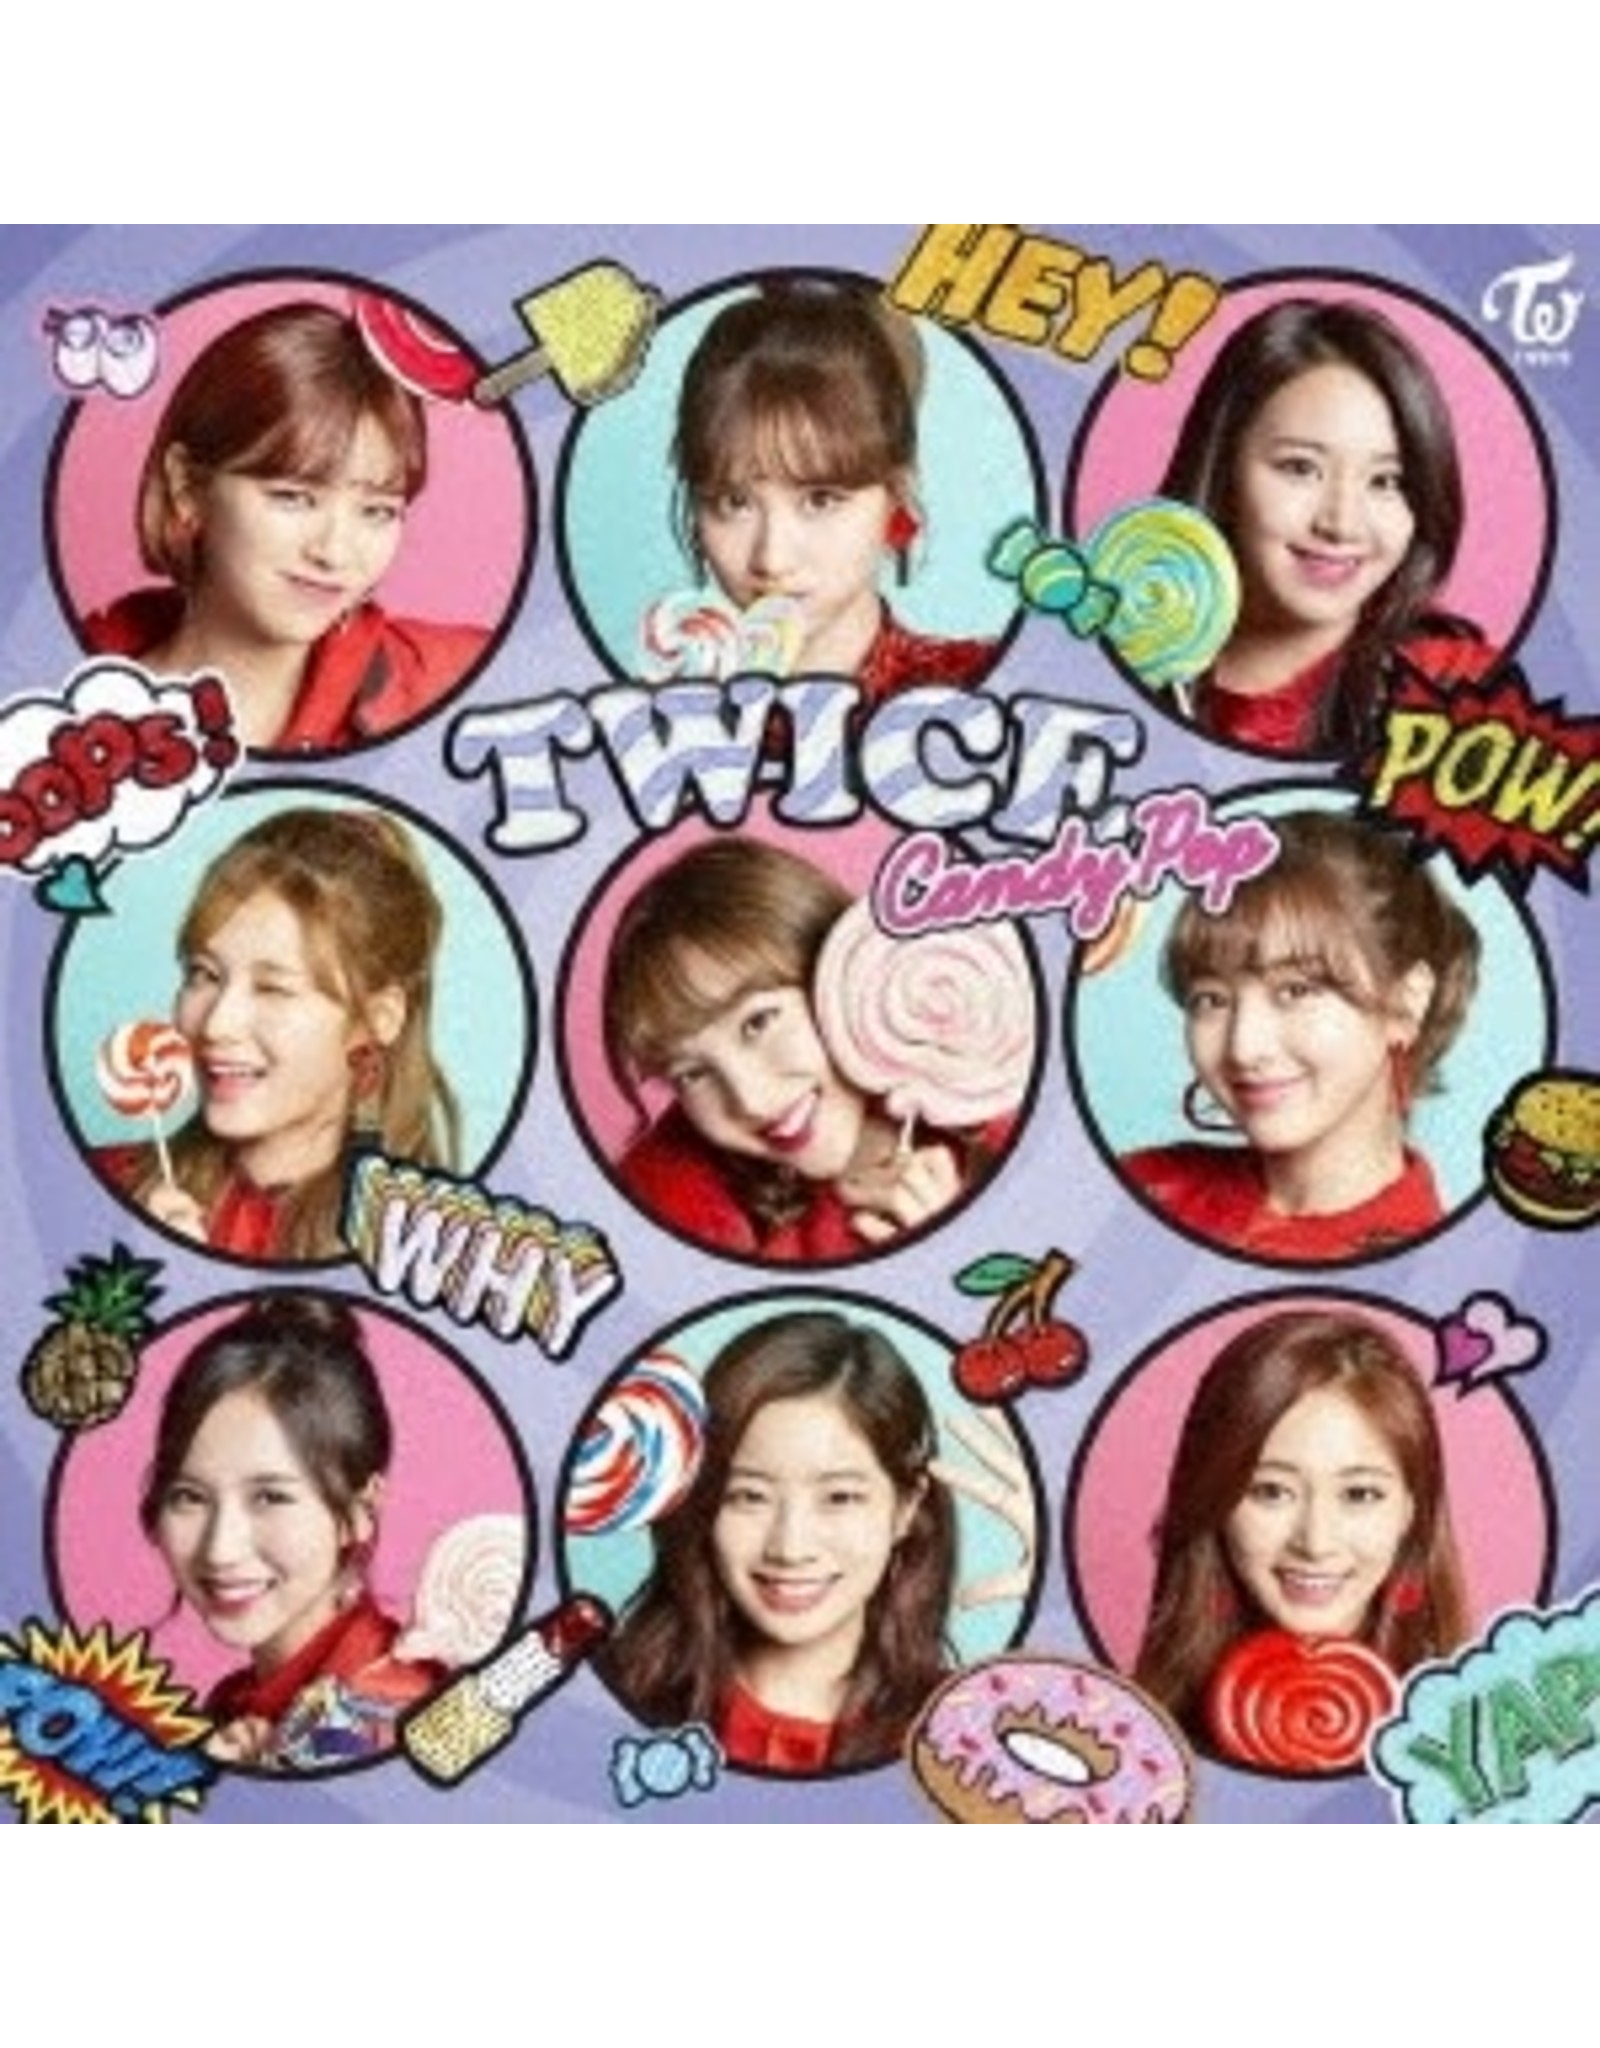 WP [CD]CANDY POP  [TRADING CARD FOR 1ST PRESSING ]